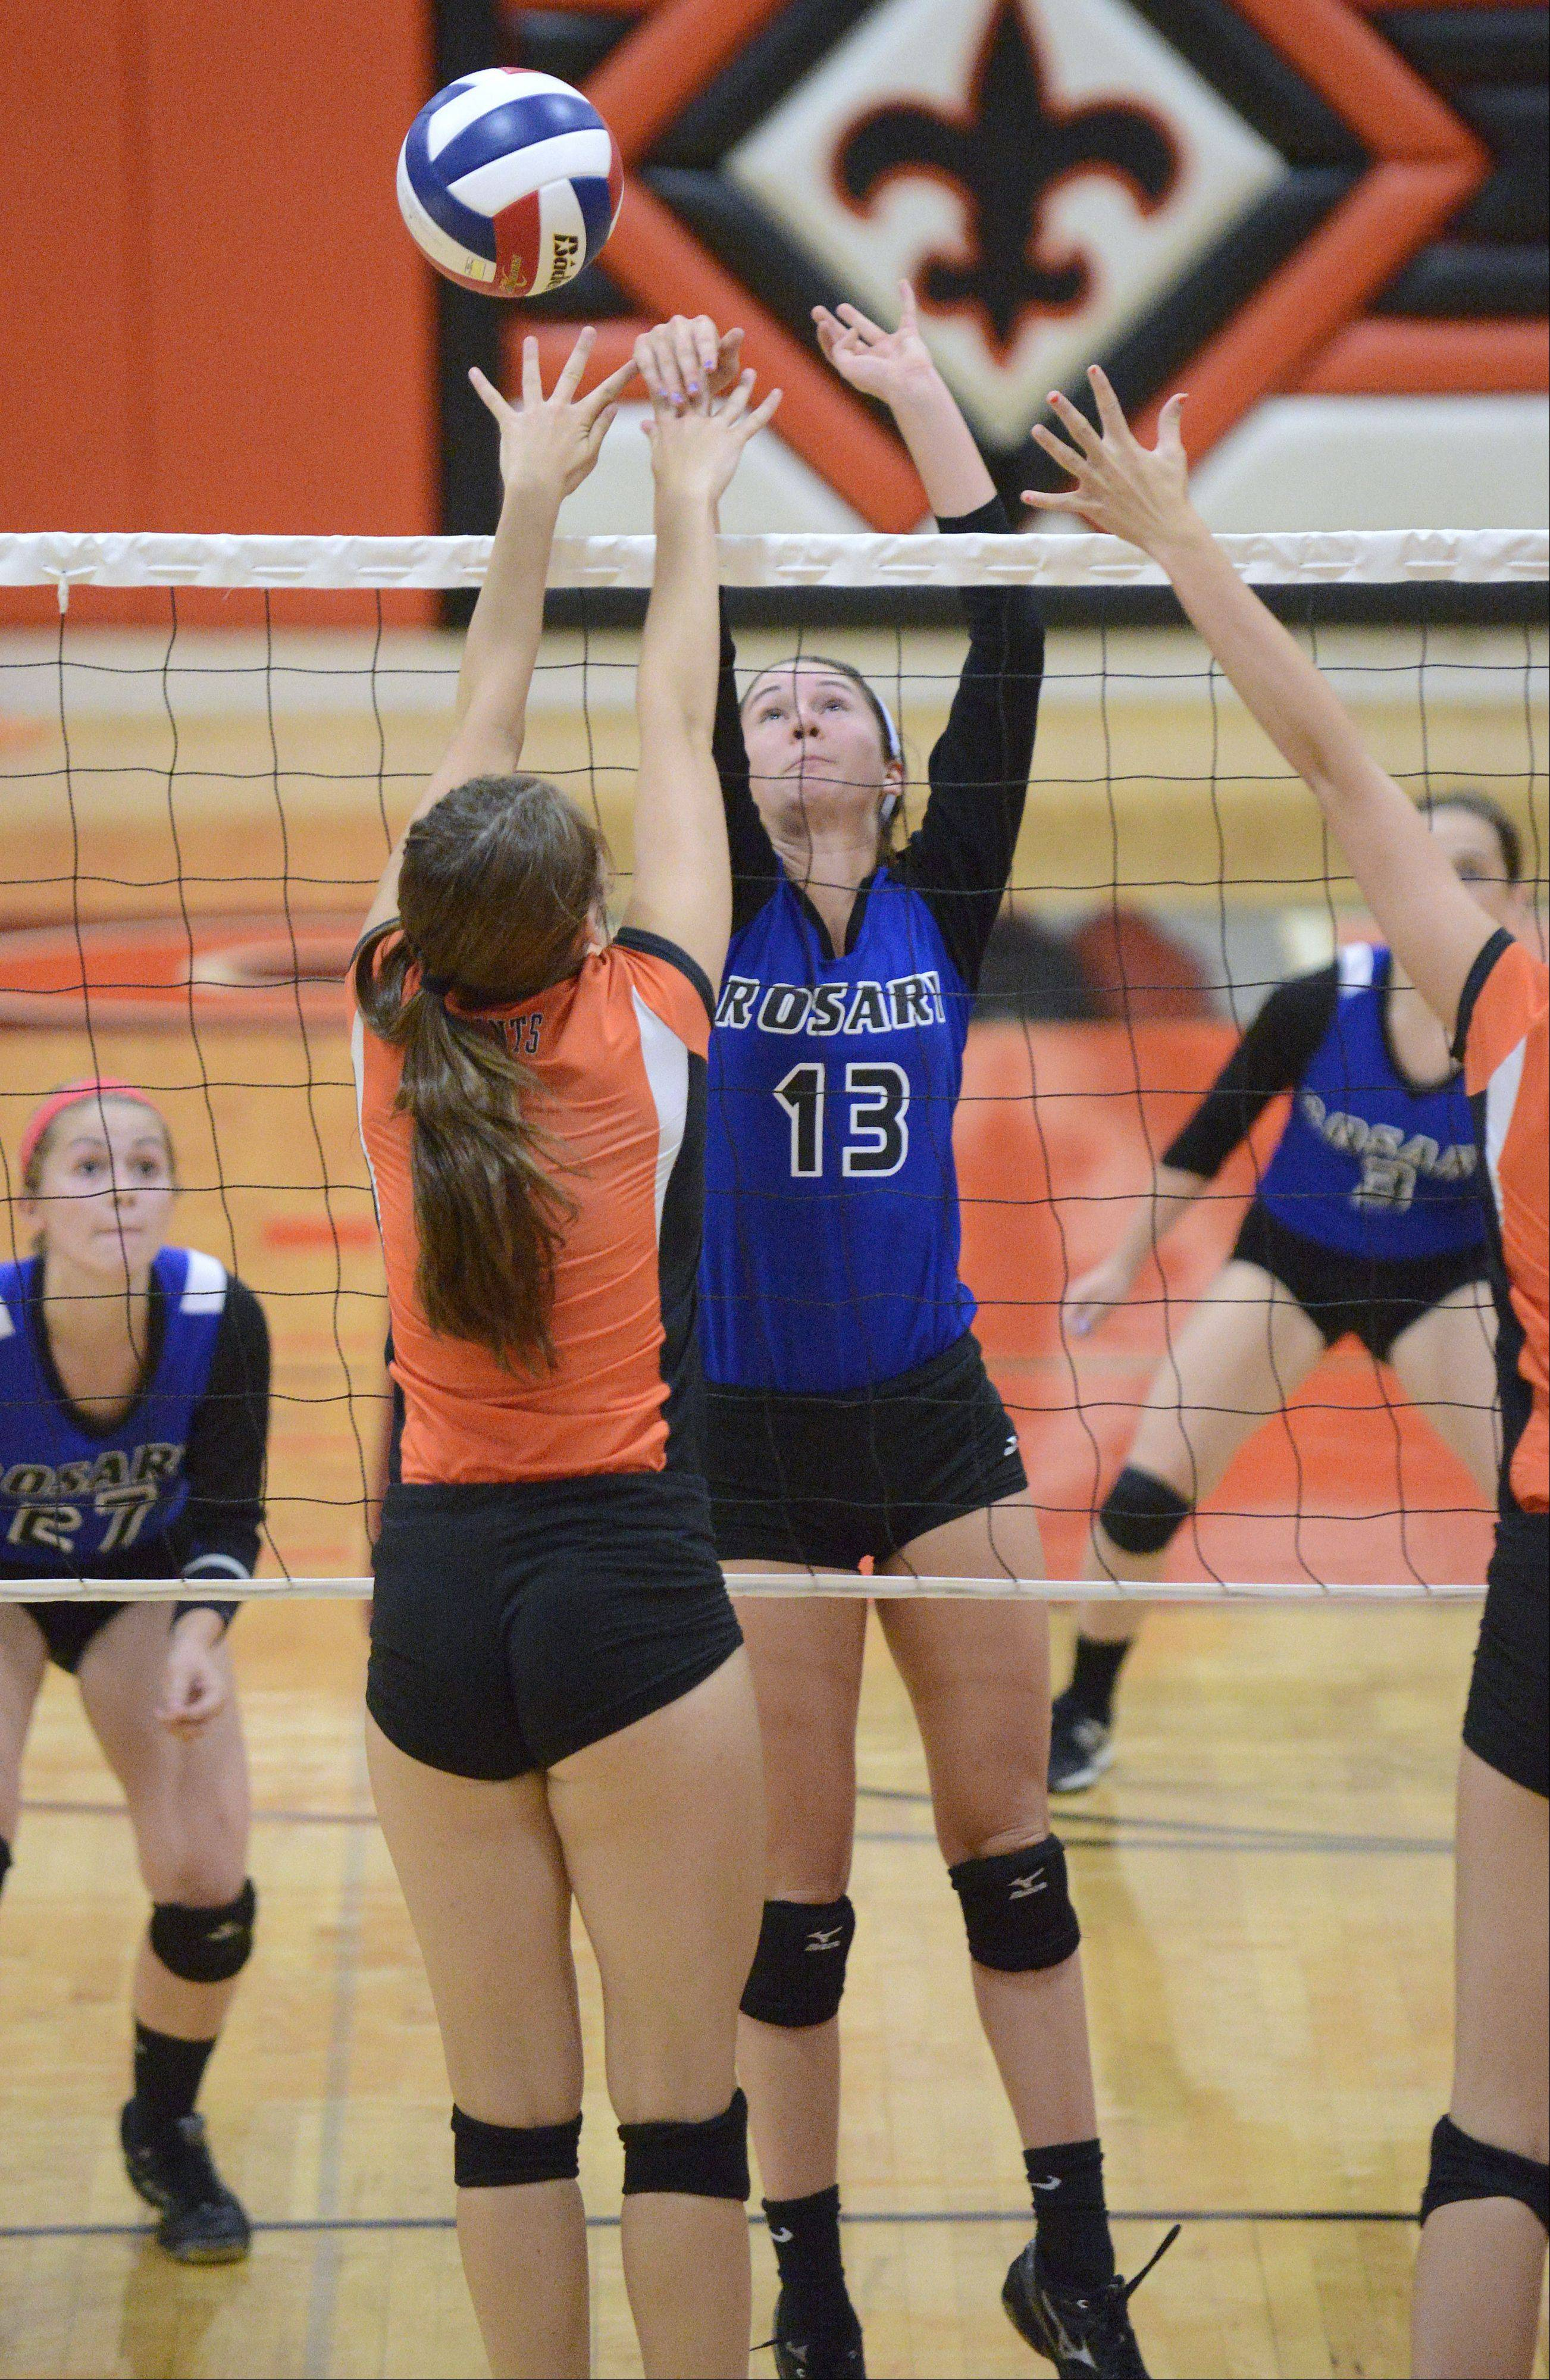 Rosary's Josephine Gallagher sends the ball over to St. Charles East's Ally Watson in the first game on Wednesday, September 4.